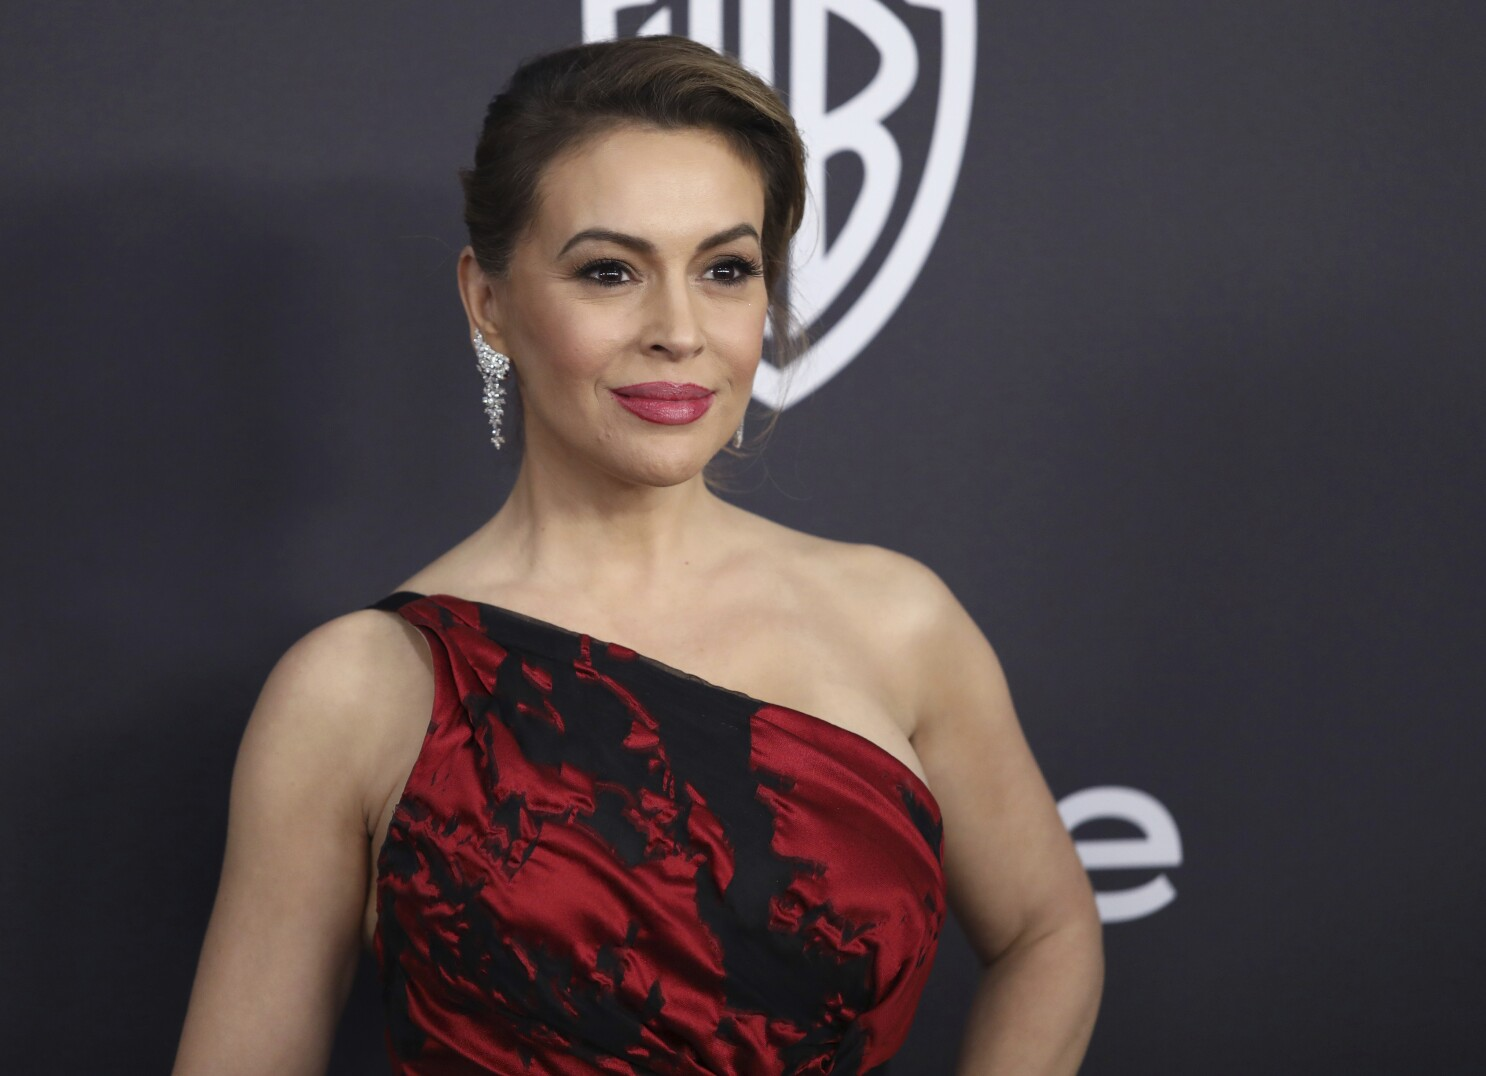 Alyssa Milano tests positive for coronavirus antibodies - Los Angeles Times